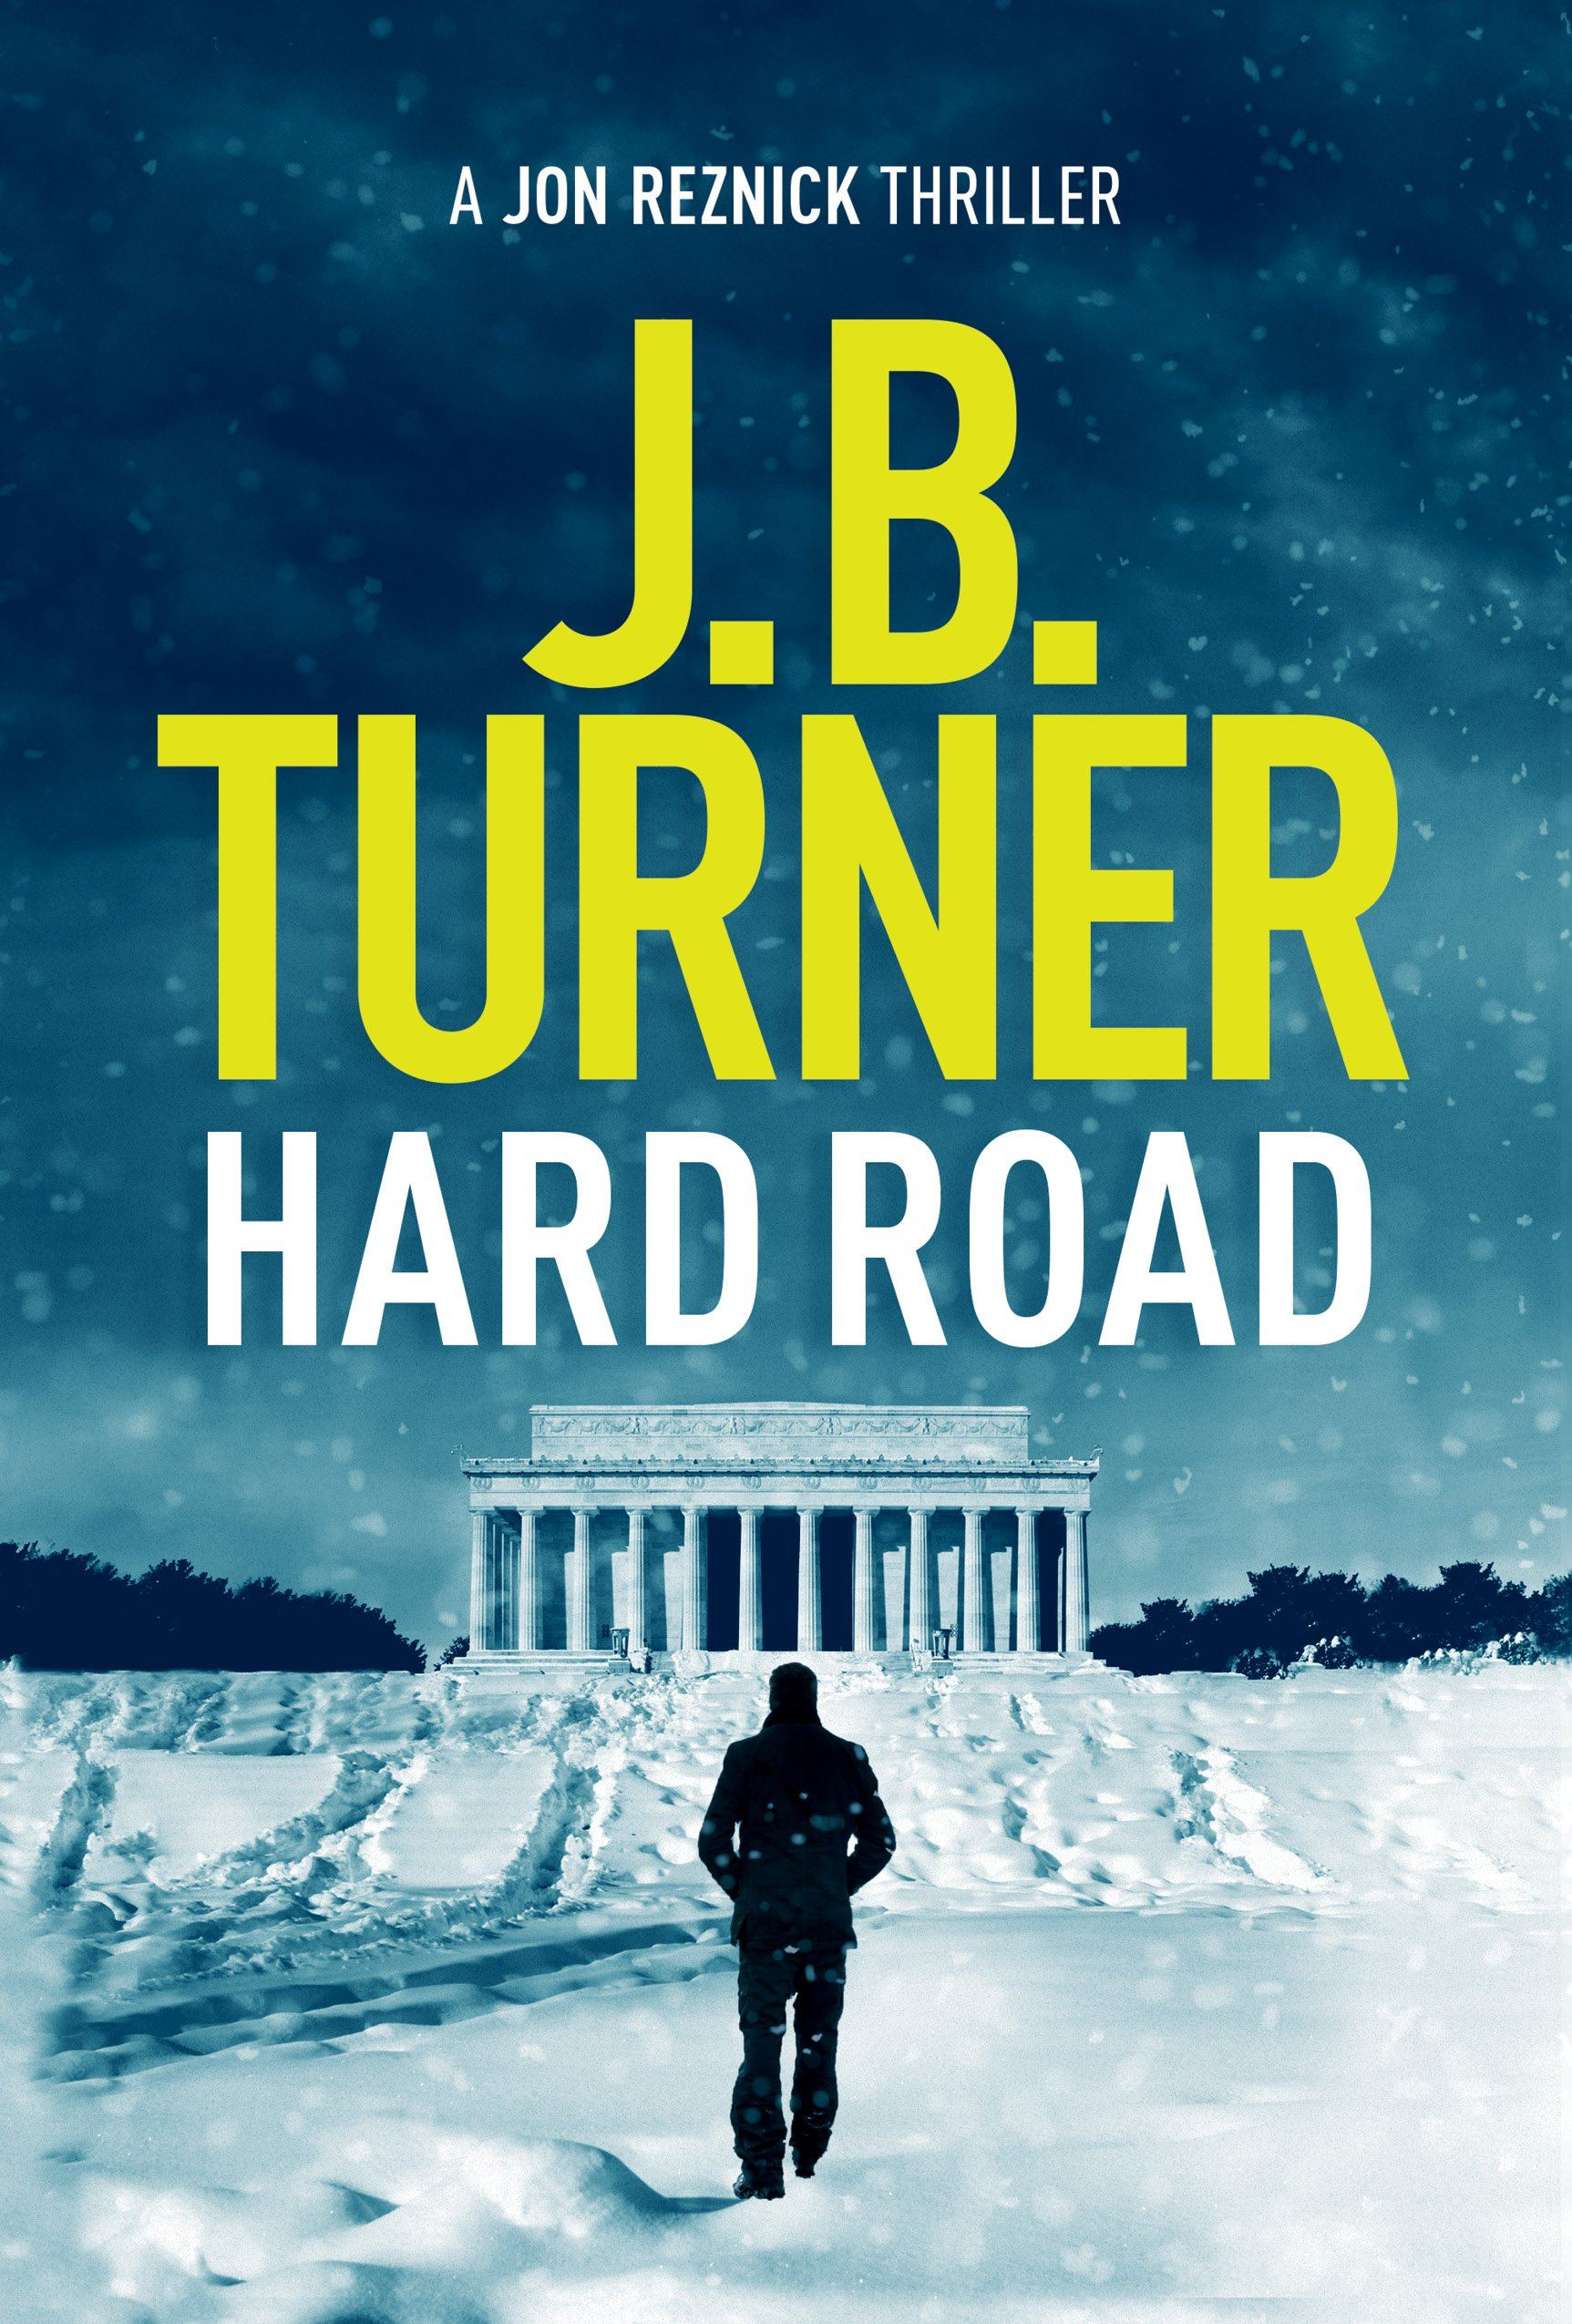 Hard Road sells 250,000 copies J.B. Turner Thriller Writer